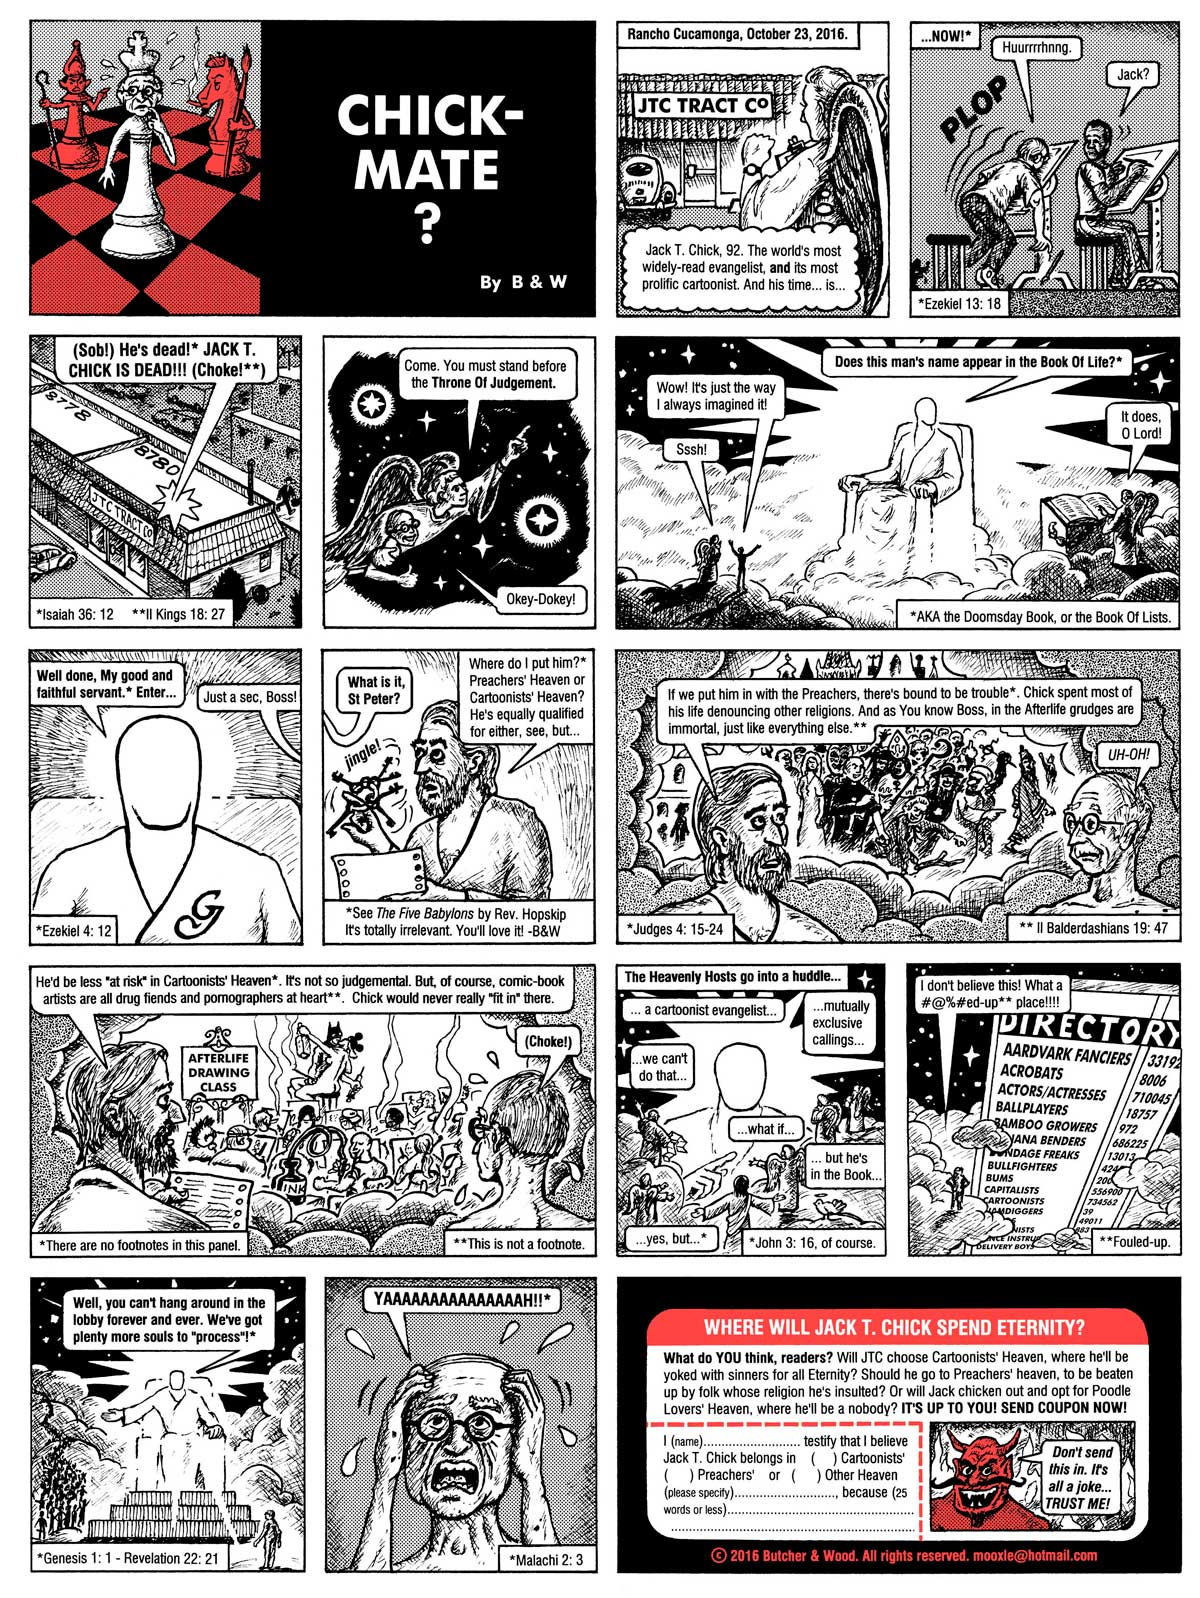 COMIX DEAD OR ALIVE: Jack T. Chick